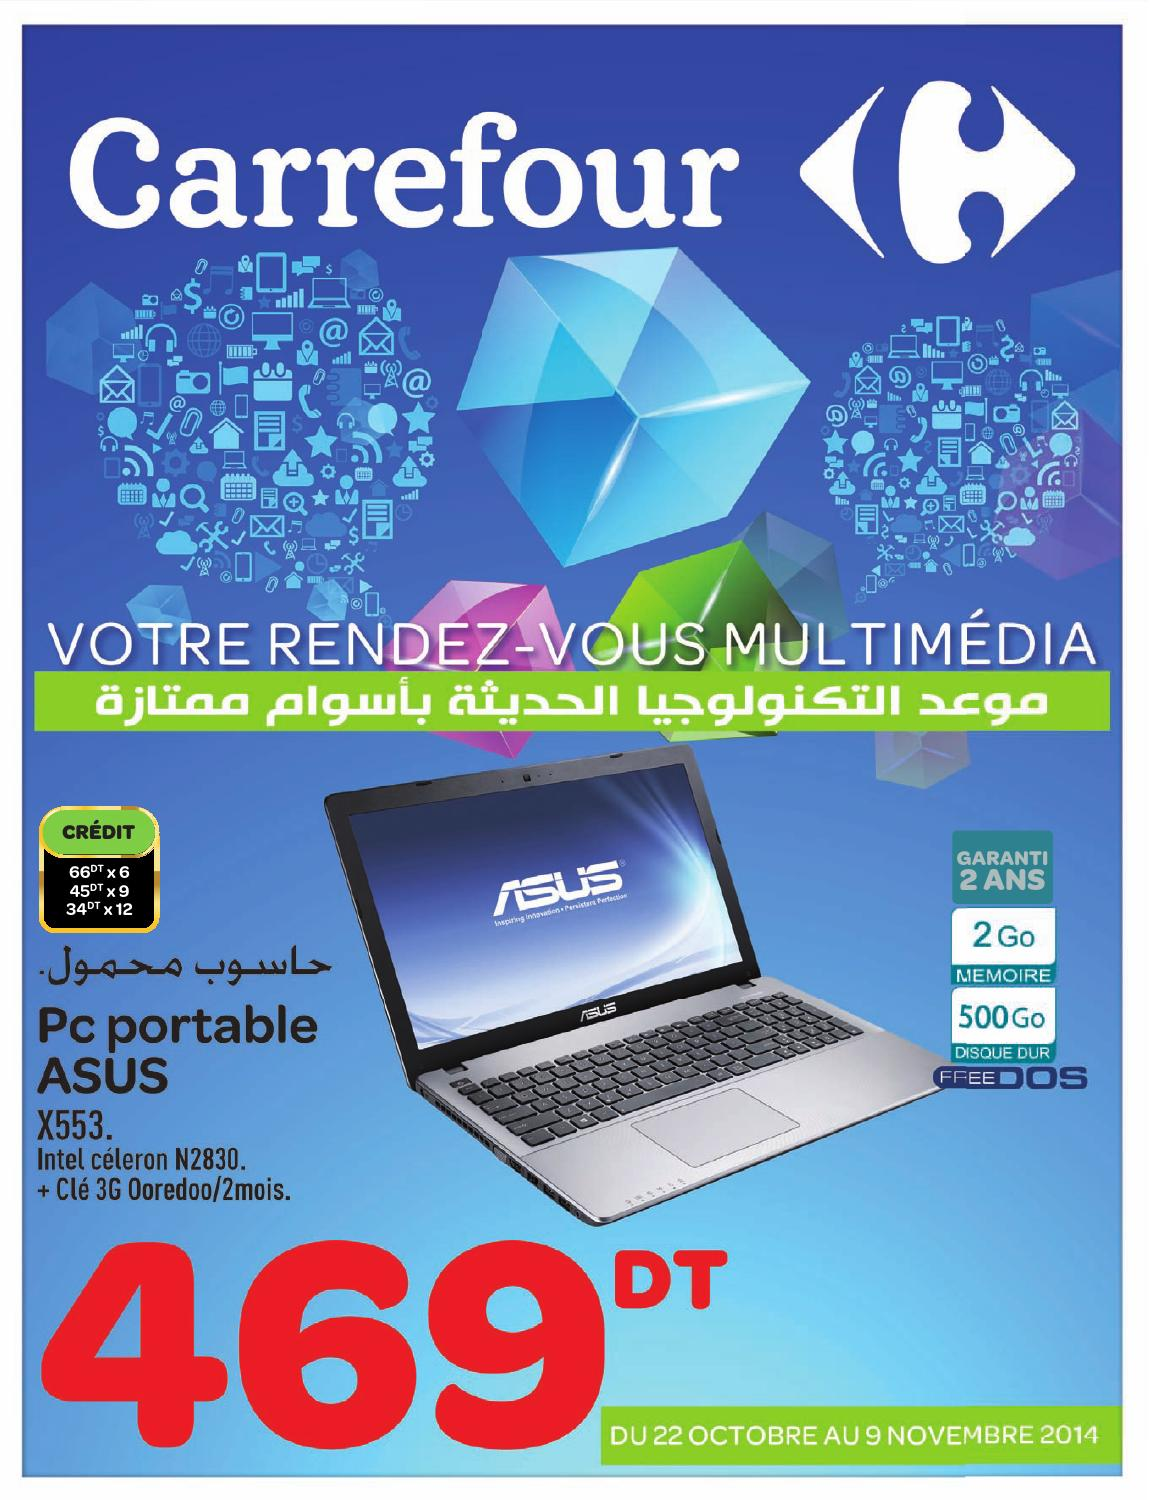 Catalogue Carrefour Multimédia By Carrefour Tunisie Issuu